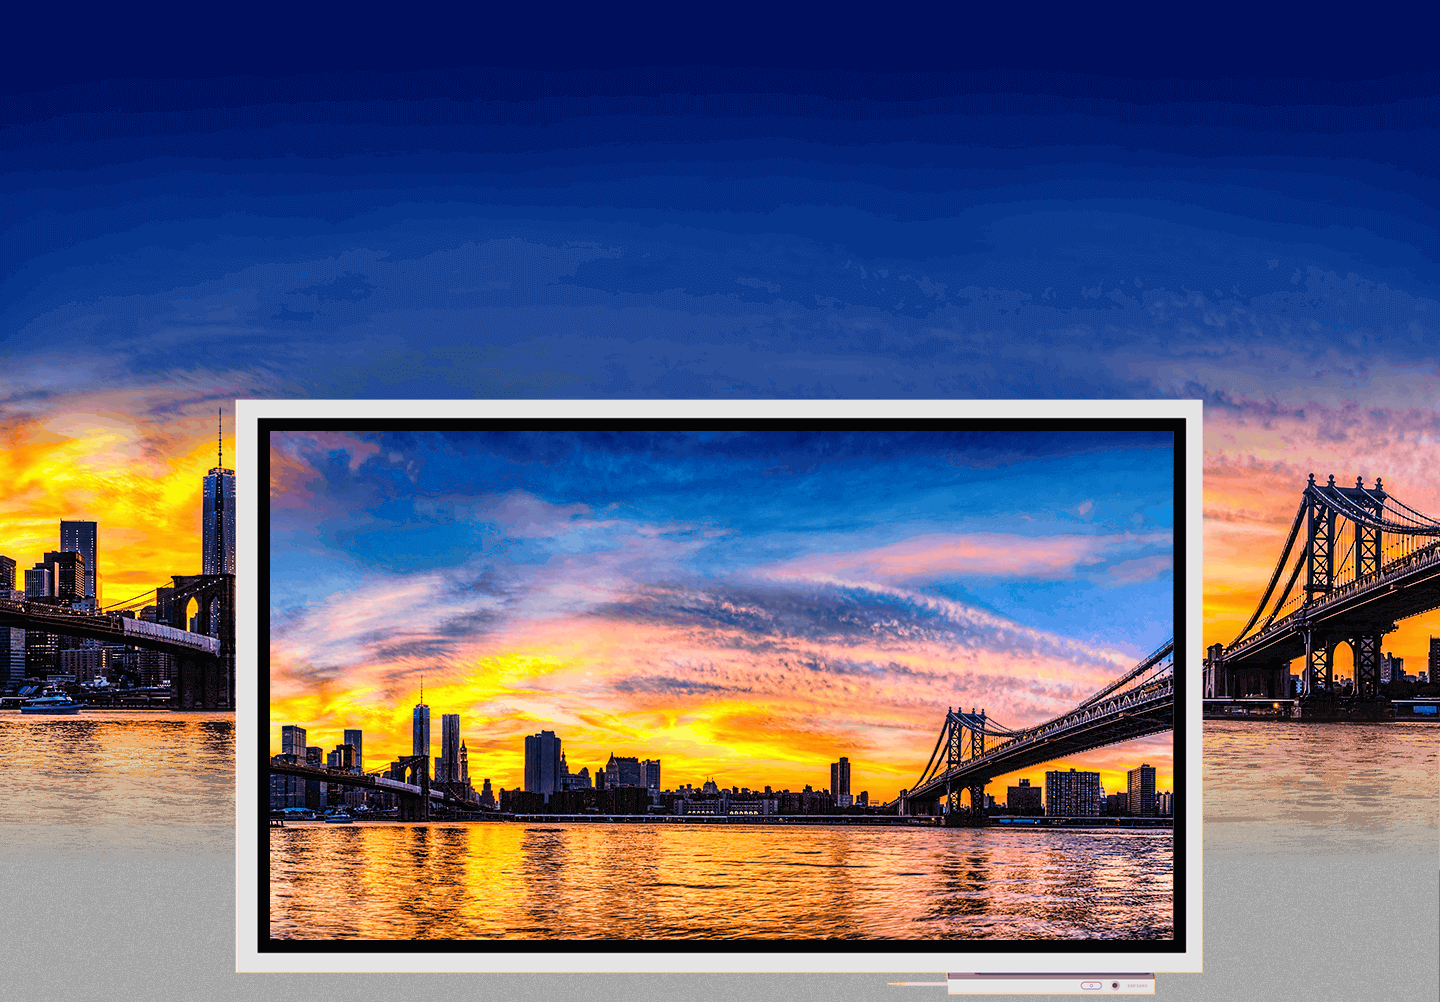 An image showing a city sunset shown on a Samsung Flip device